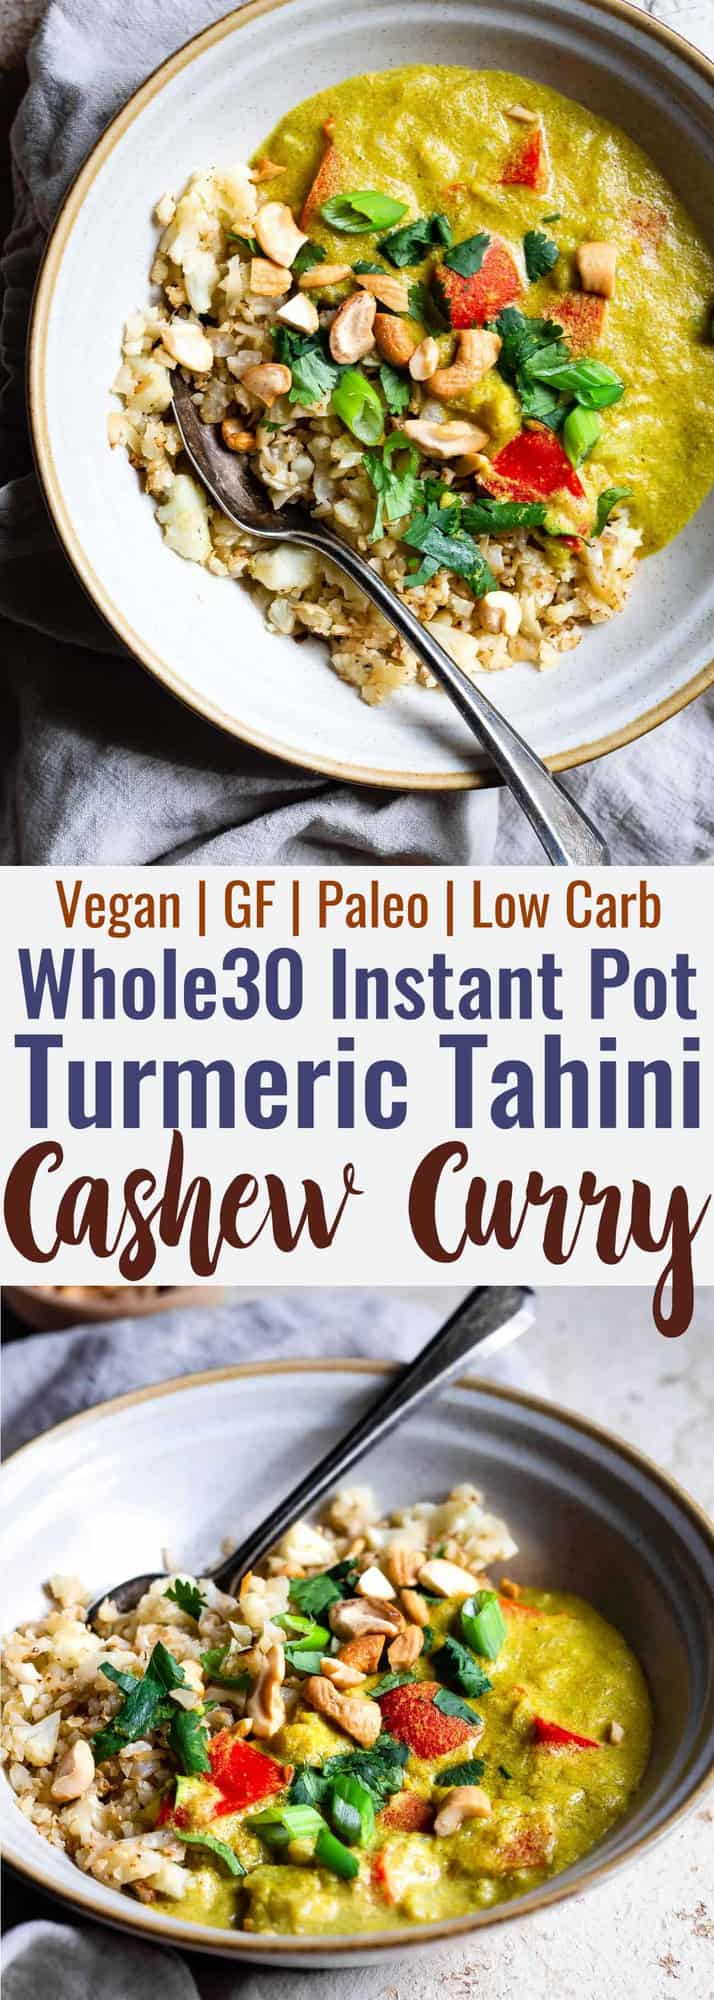 Whole30 Instant Pot Tahini Cashew Curry - This Instant Pot Curry is a quick and easy dinner with Middle Eastern flavor! Paleo and vegan friendly, whole30 compliant and only 200 calories! | #Foodfaithfitness | #Vegan #Whole30 #Paleo #Lowcarb #Glutenfree